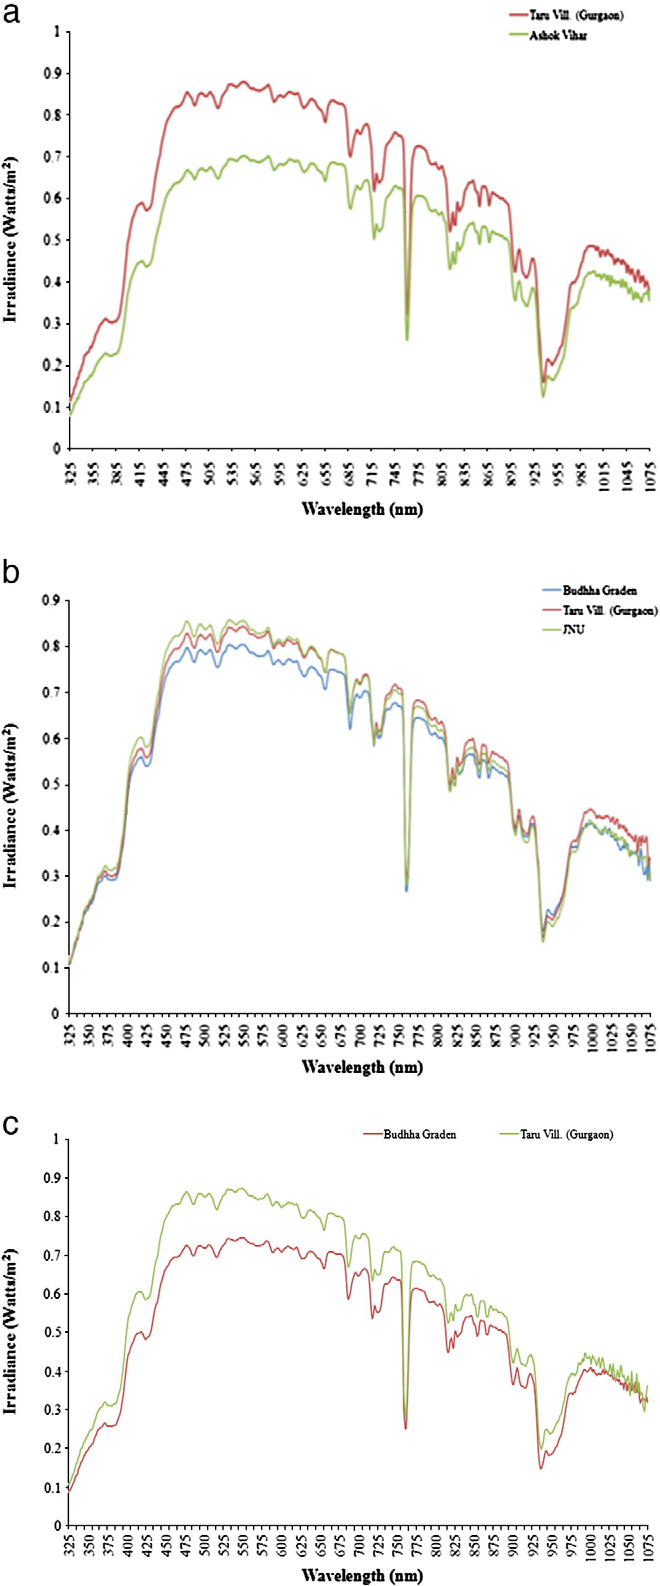 Fig. 4. (a–c) Solar spectral irradiance observed at Delhi and outside (site-4 near Taru) on (a) November 3 and 4, 2010, (b) November 19, 20 and 21, 2010 and (c) December 22 and 23 2010.